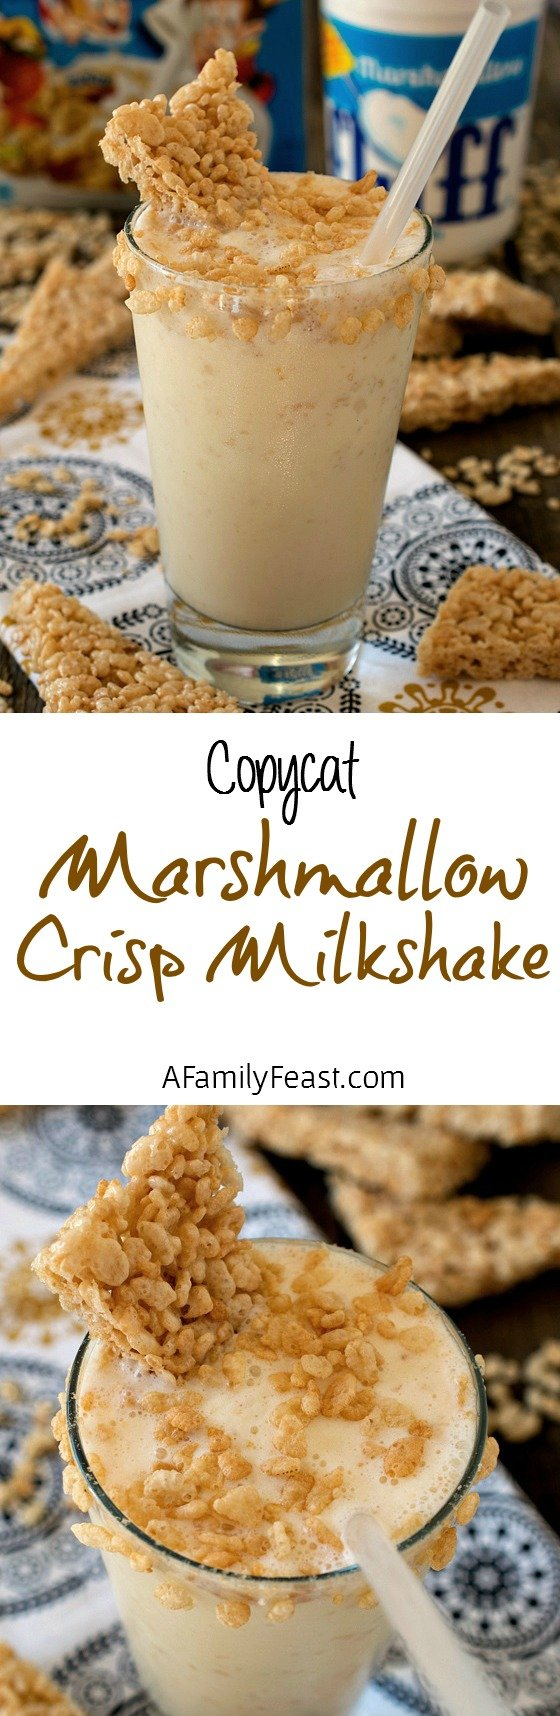 Marshmallow Crisp Milkshake - A fun and delicious milkshake with all of the classic flavors in a Rice Krispies Treat!